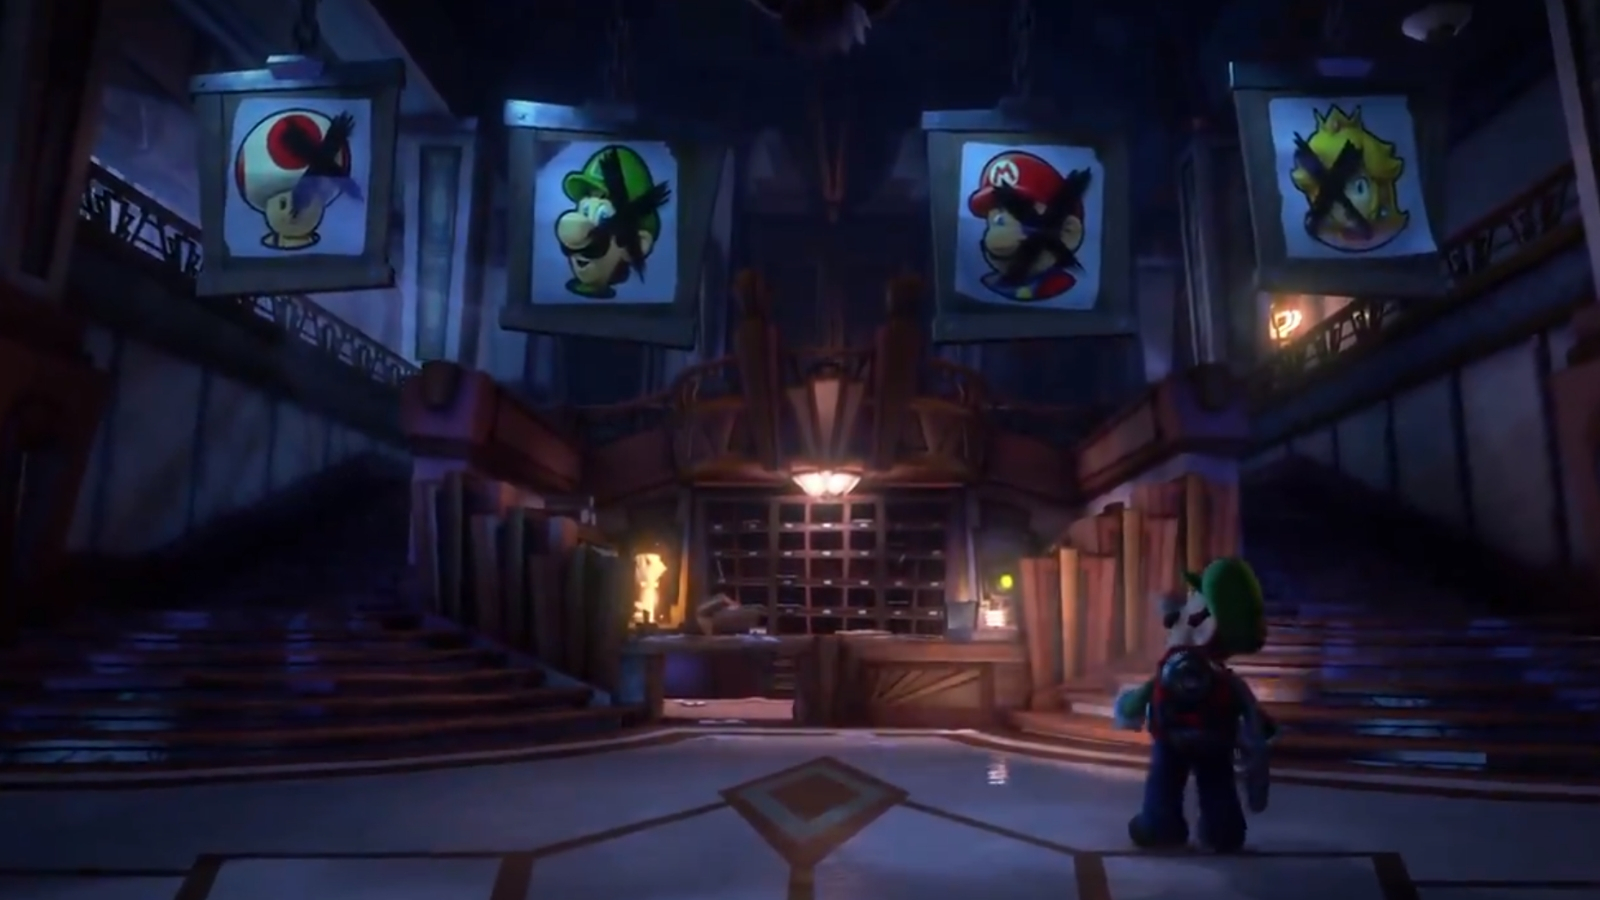 Luigi S Mansion 3 Is Coming To Nintendo Switch On Halloween